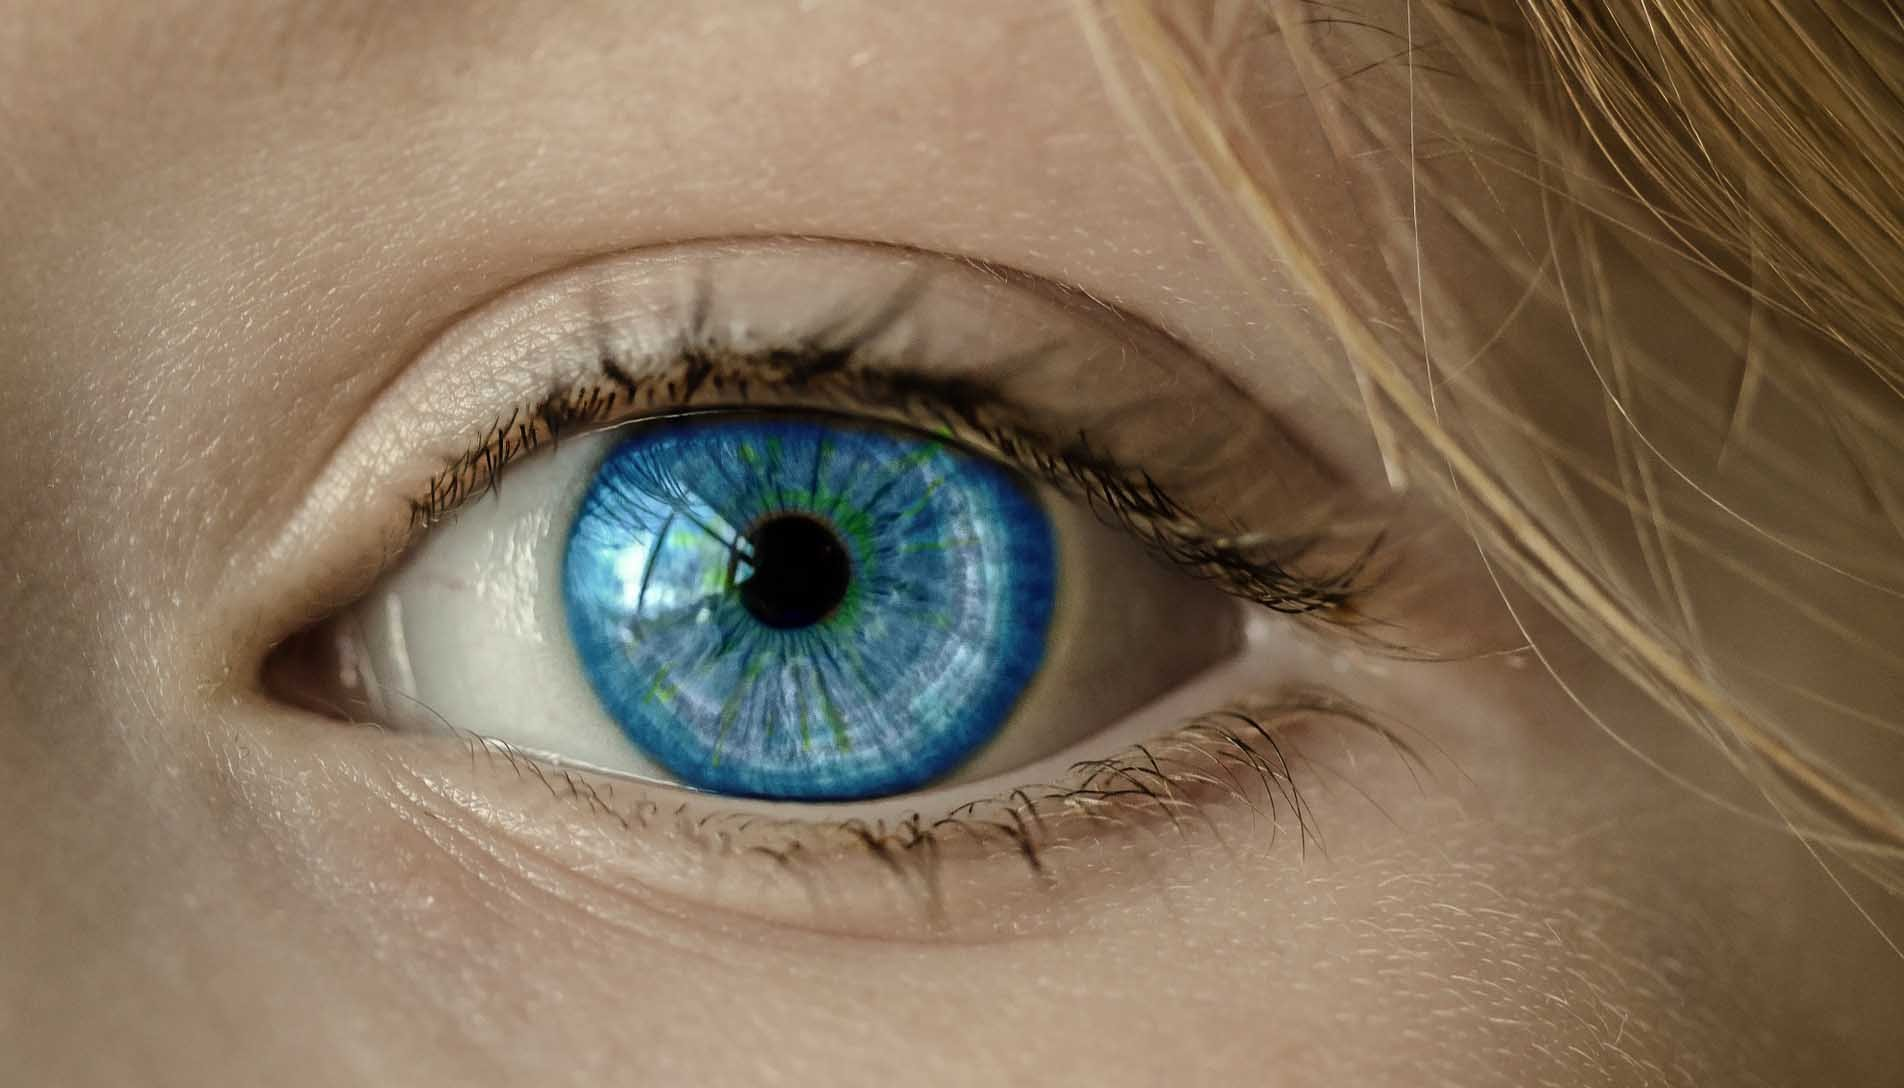 The prosthetic was approved for adults and children with missing or damages irises. (Source: Pixabay)